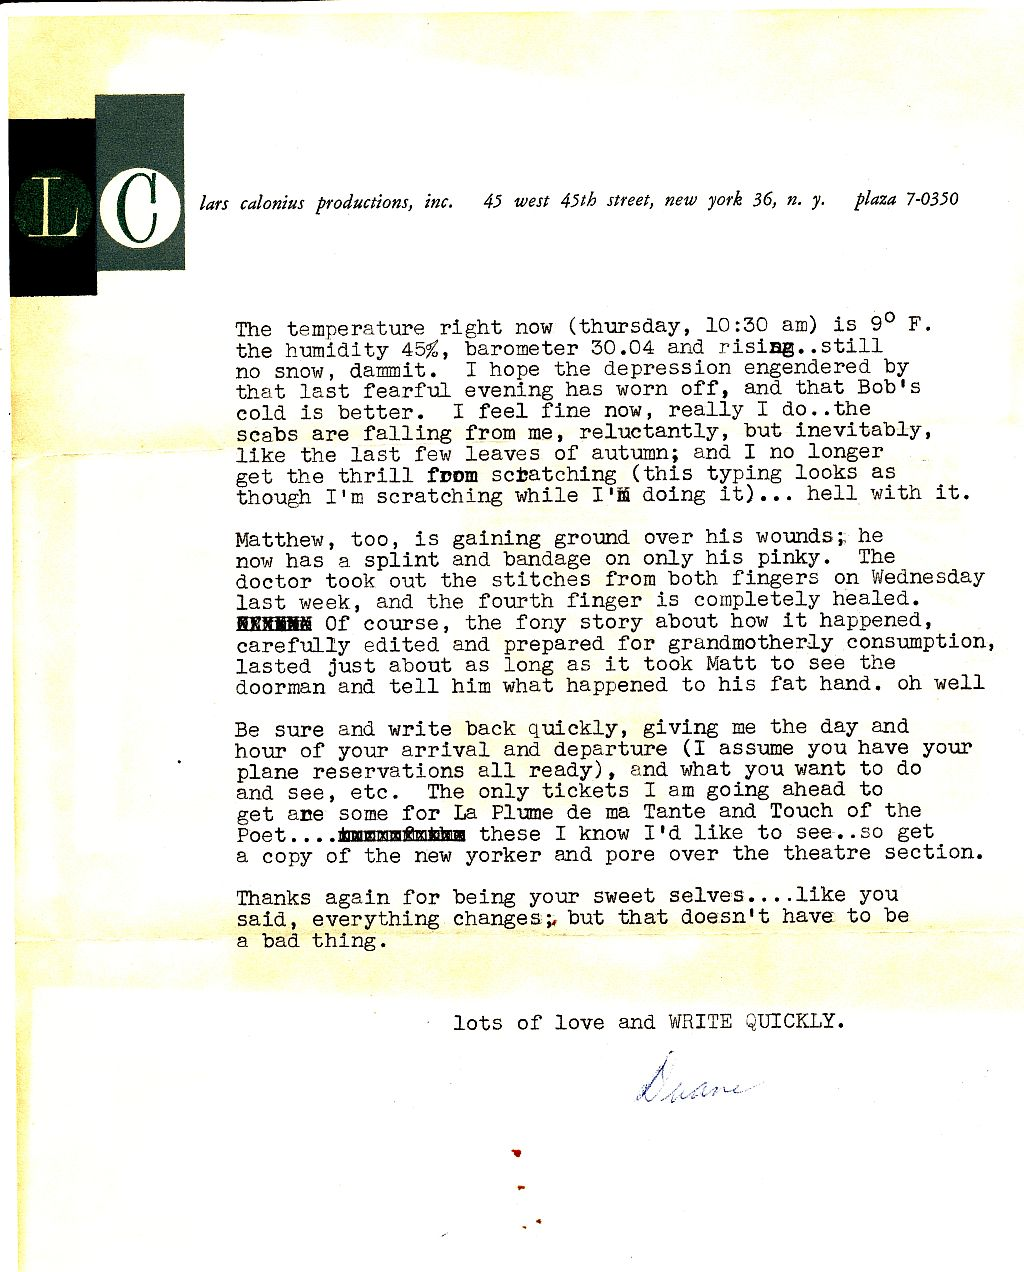 duane-letter-1955-lars-colonius-stationery.jpg